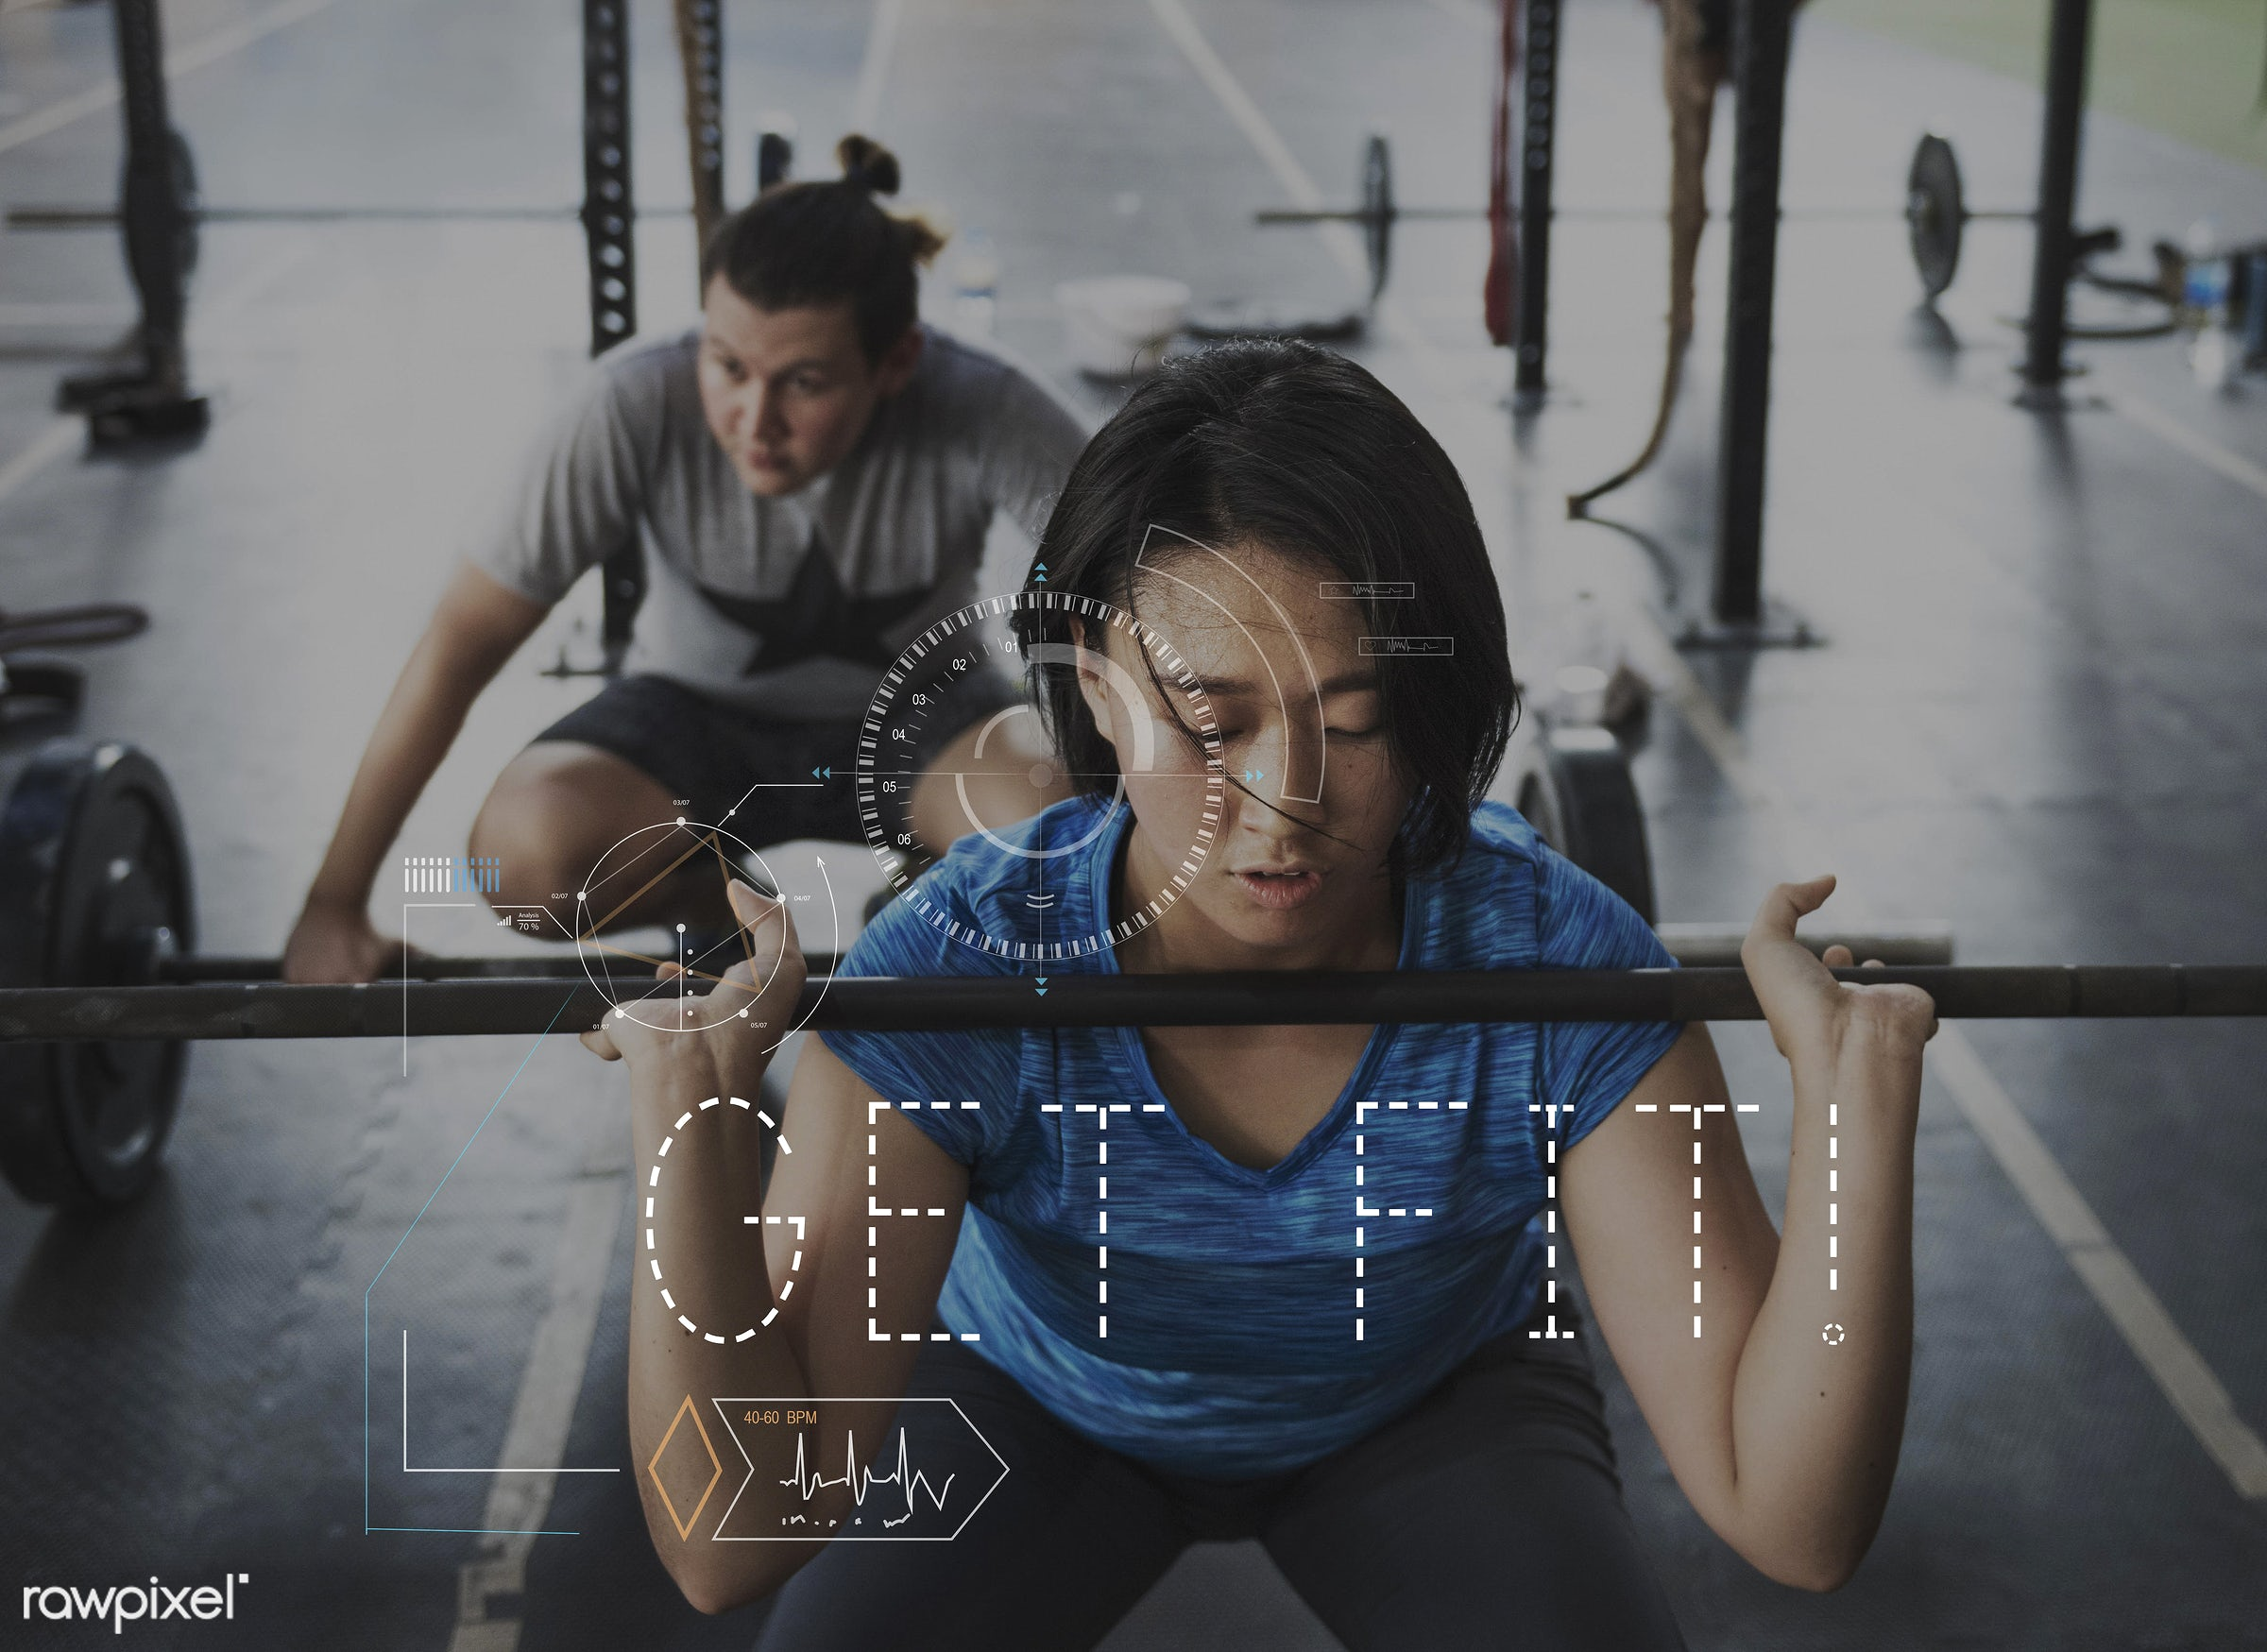 Get fit - healthcare, asian, blonde, body, condition, crosshair, daily, energy, exercise, fit, fitness, grab, graphic, gym,...